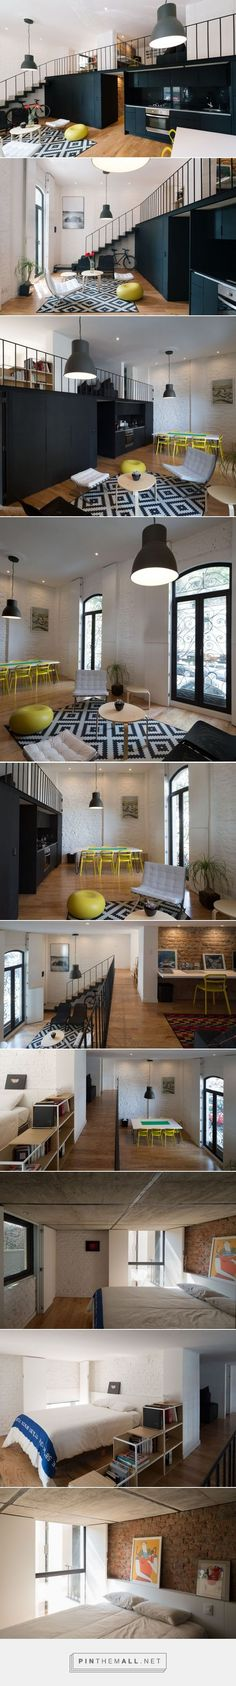 Cordoba Apartment by Cadaval & Solà-Morales | HomeAdore - created via http://pinthemall.net